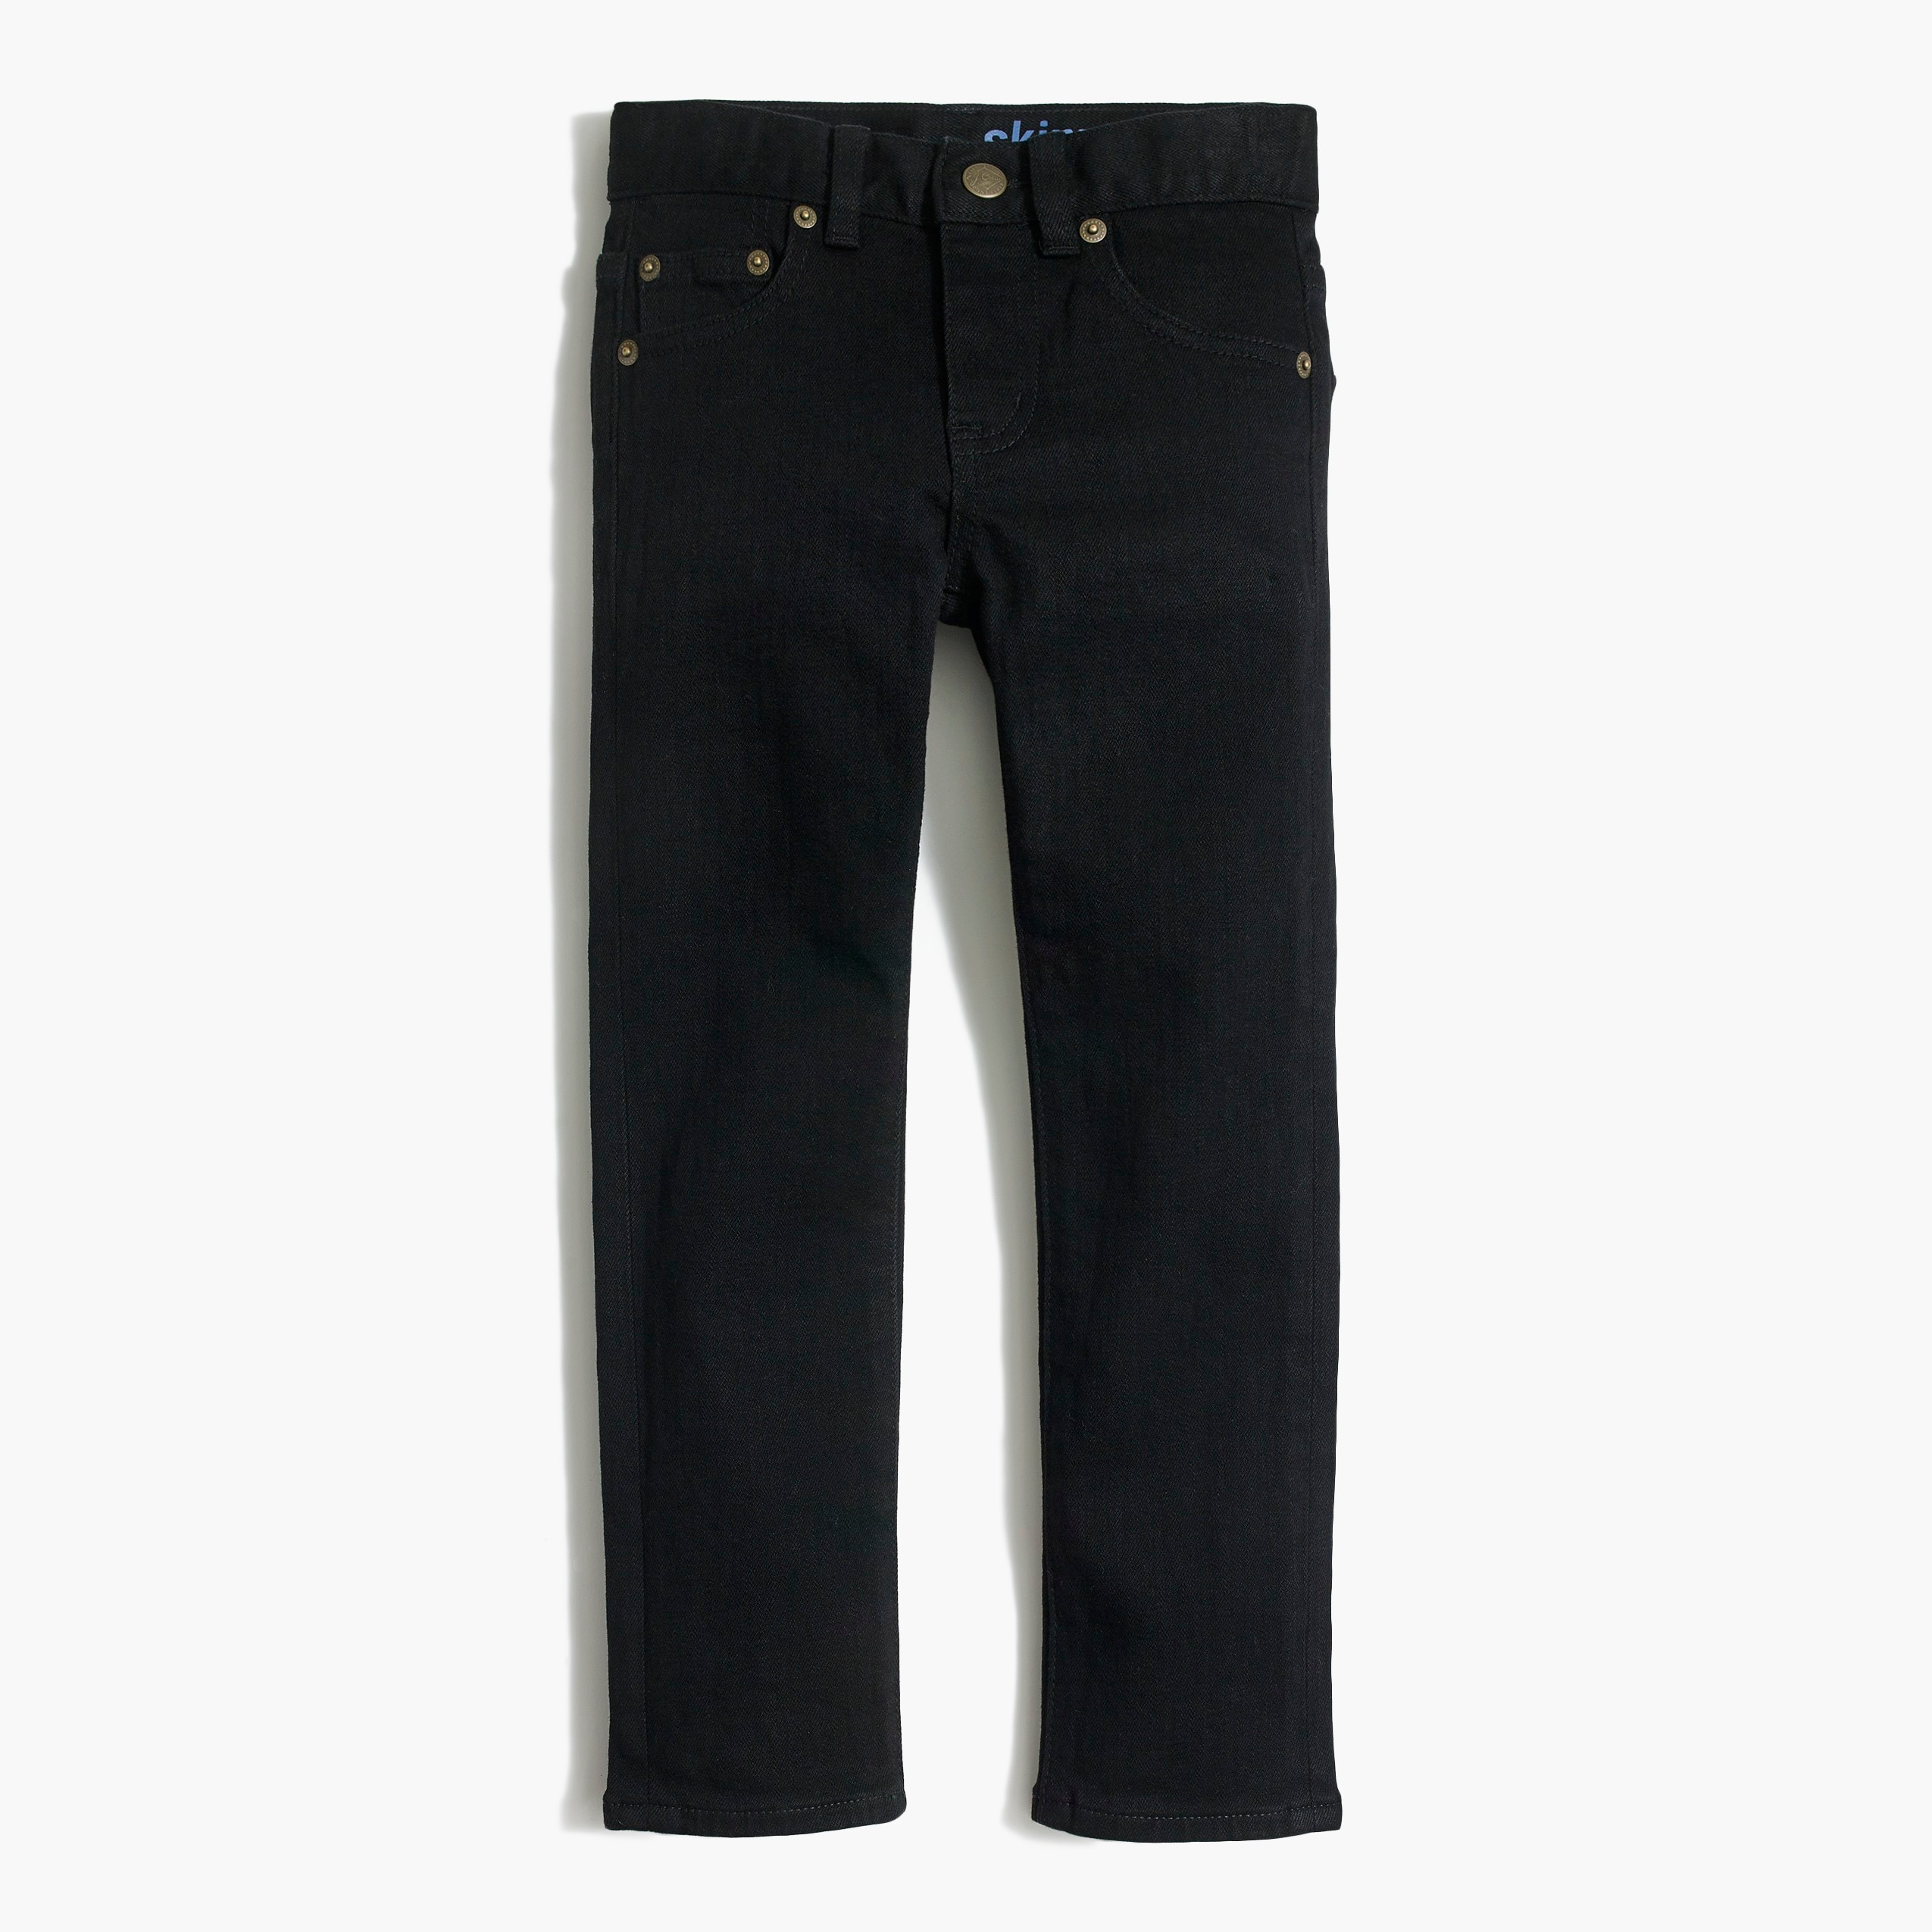 Boys' slim-fit black flex denim